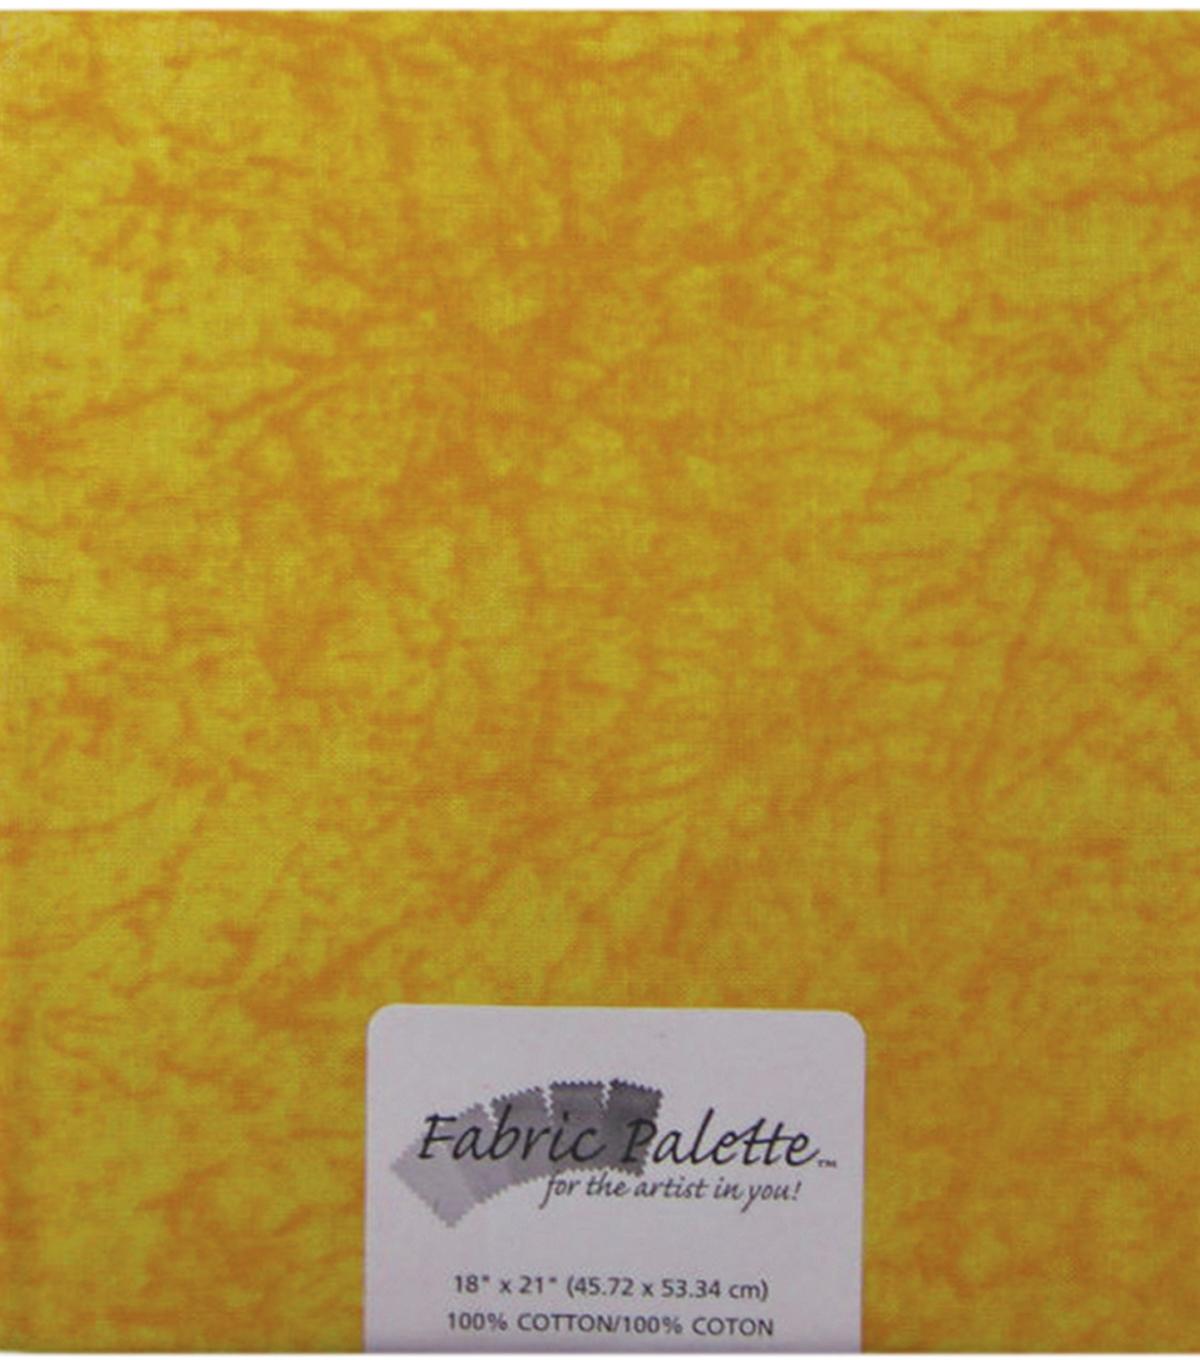 Fabric Palette 1/4yd Pre-cut Cotton Fabric-Yellow Texture